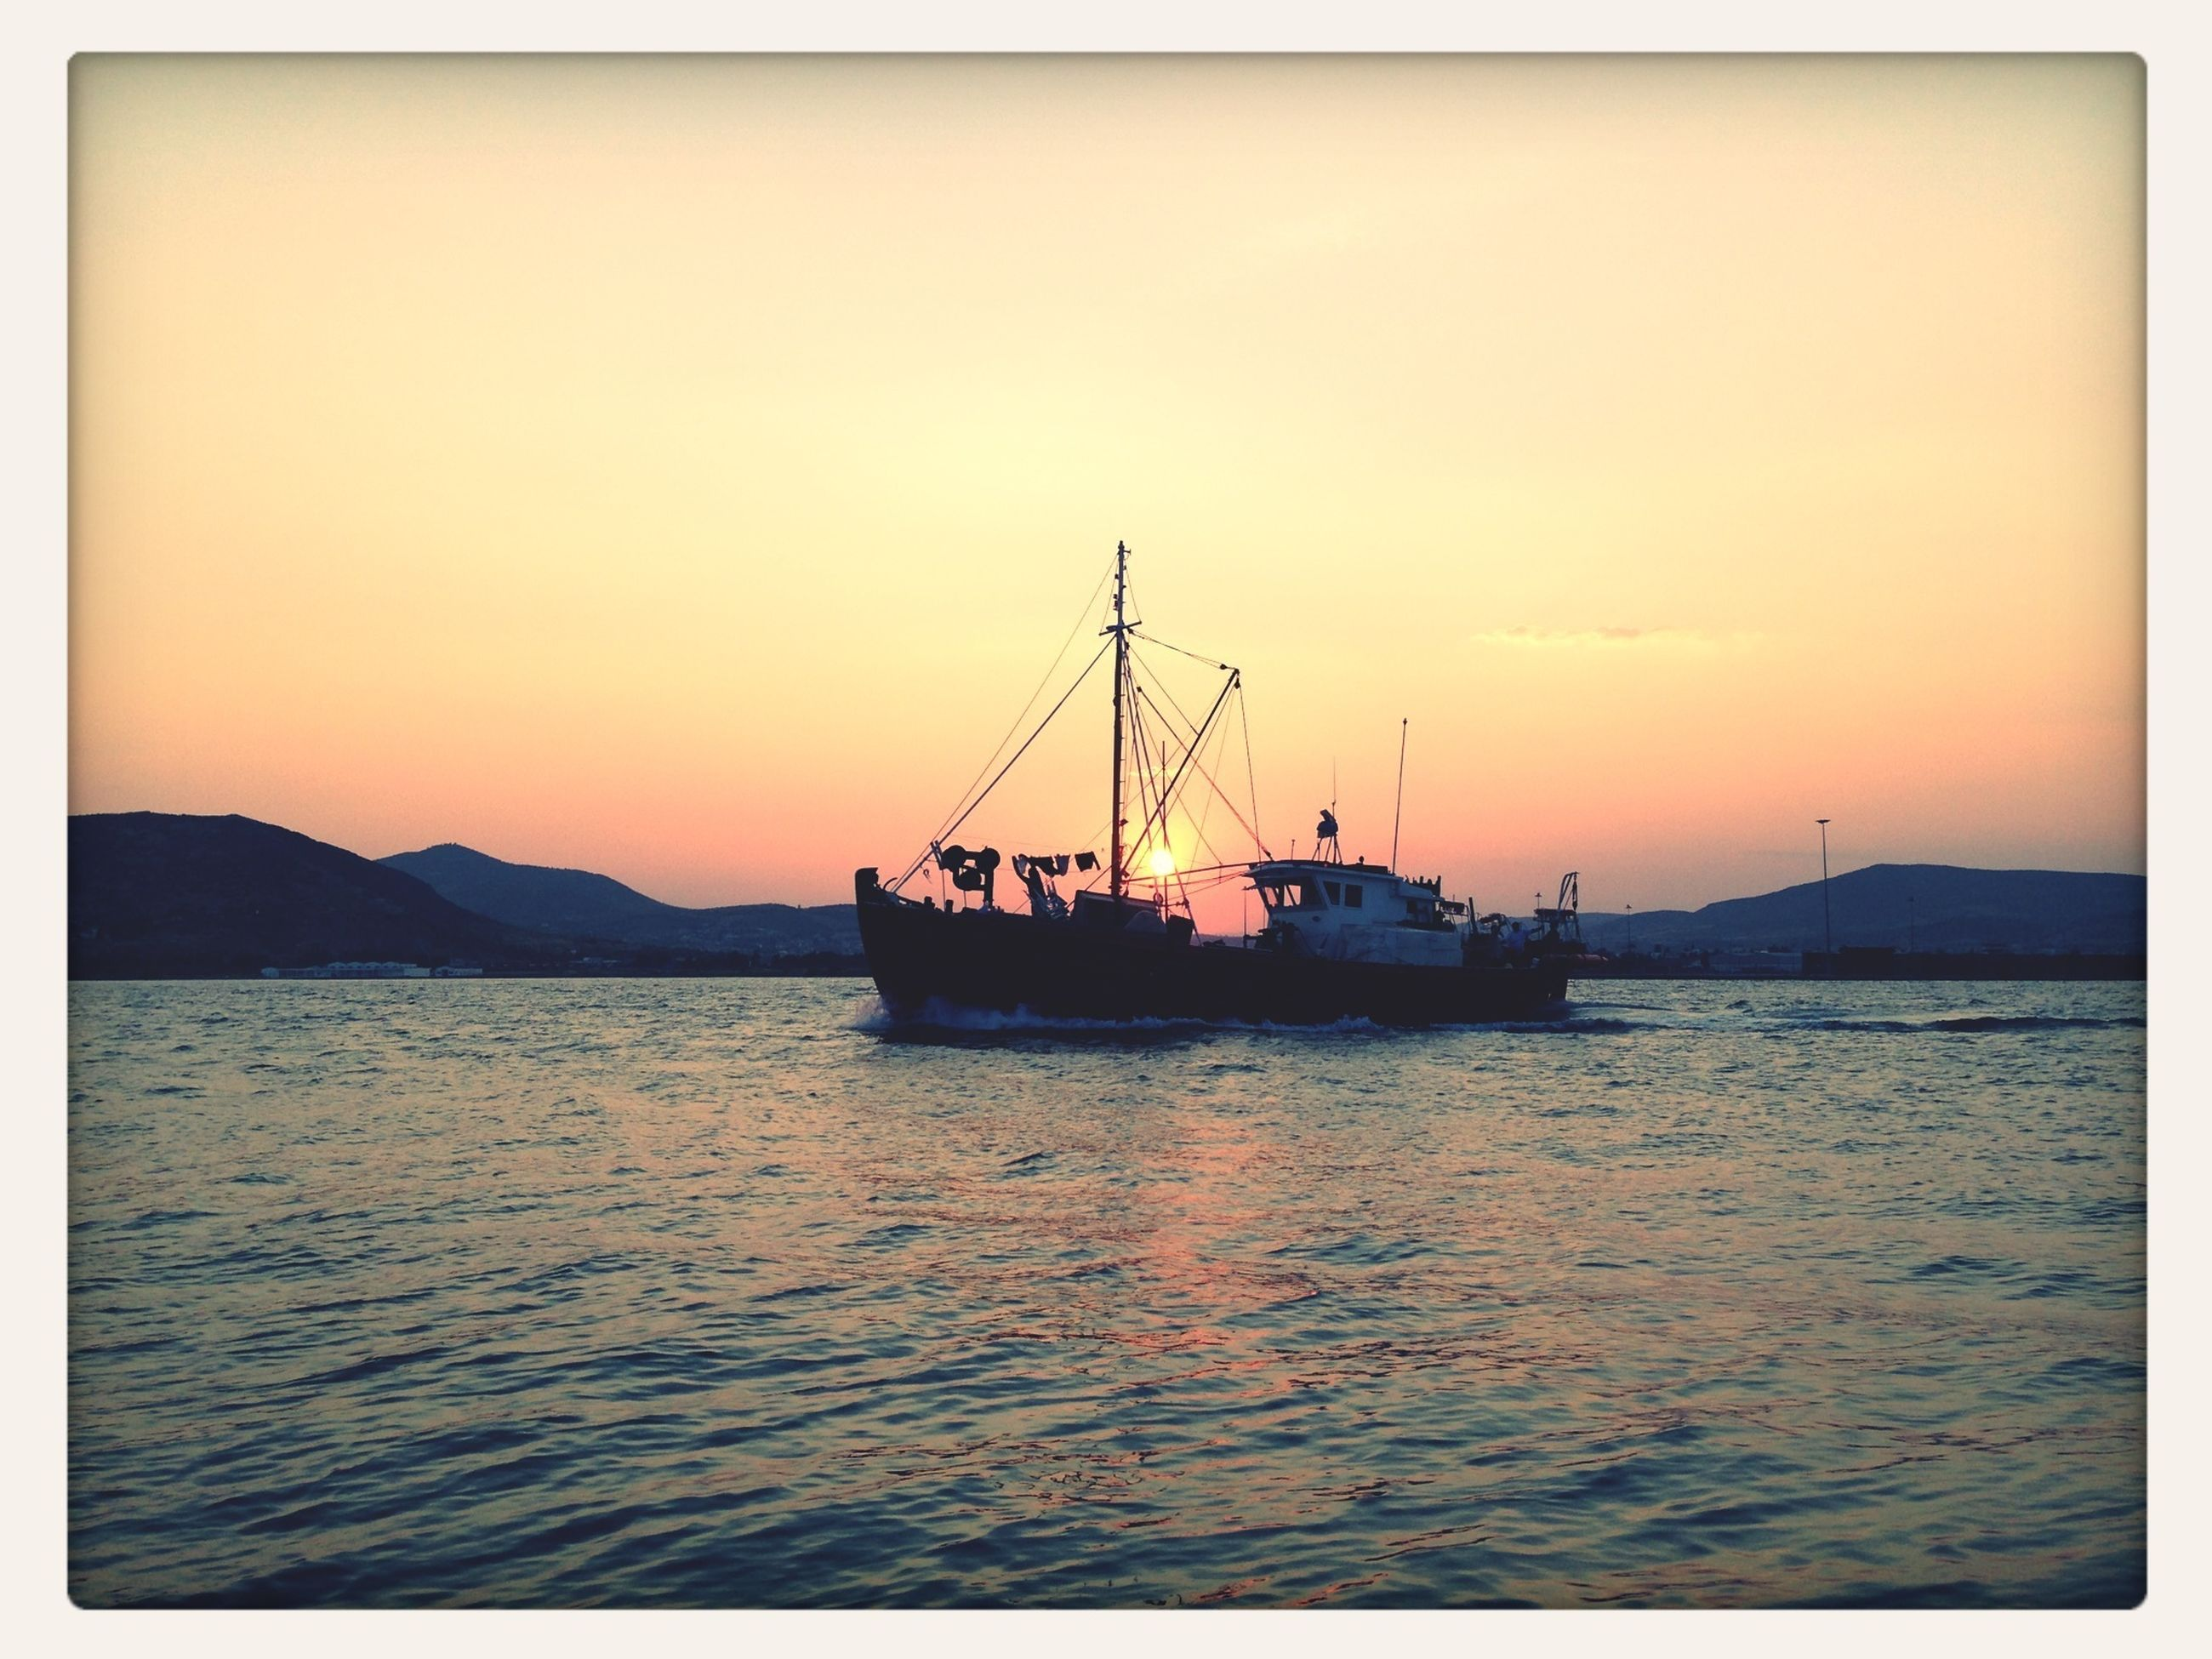 sunset, water, transfer print, nautical vessel, sea, transportation, silhouette, orange color, boat, scenics, beauty in nature, tranquility, mode of transport, auto post production filter, tranquil scene, sky, waterfront, sailboat, nature, mast